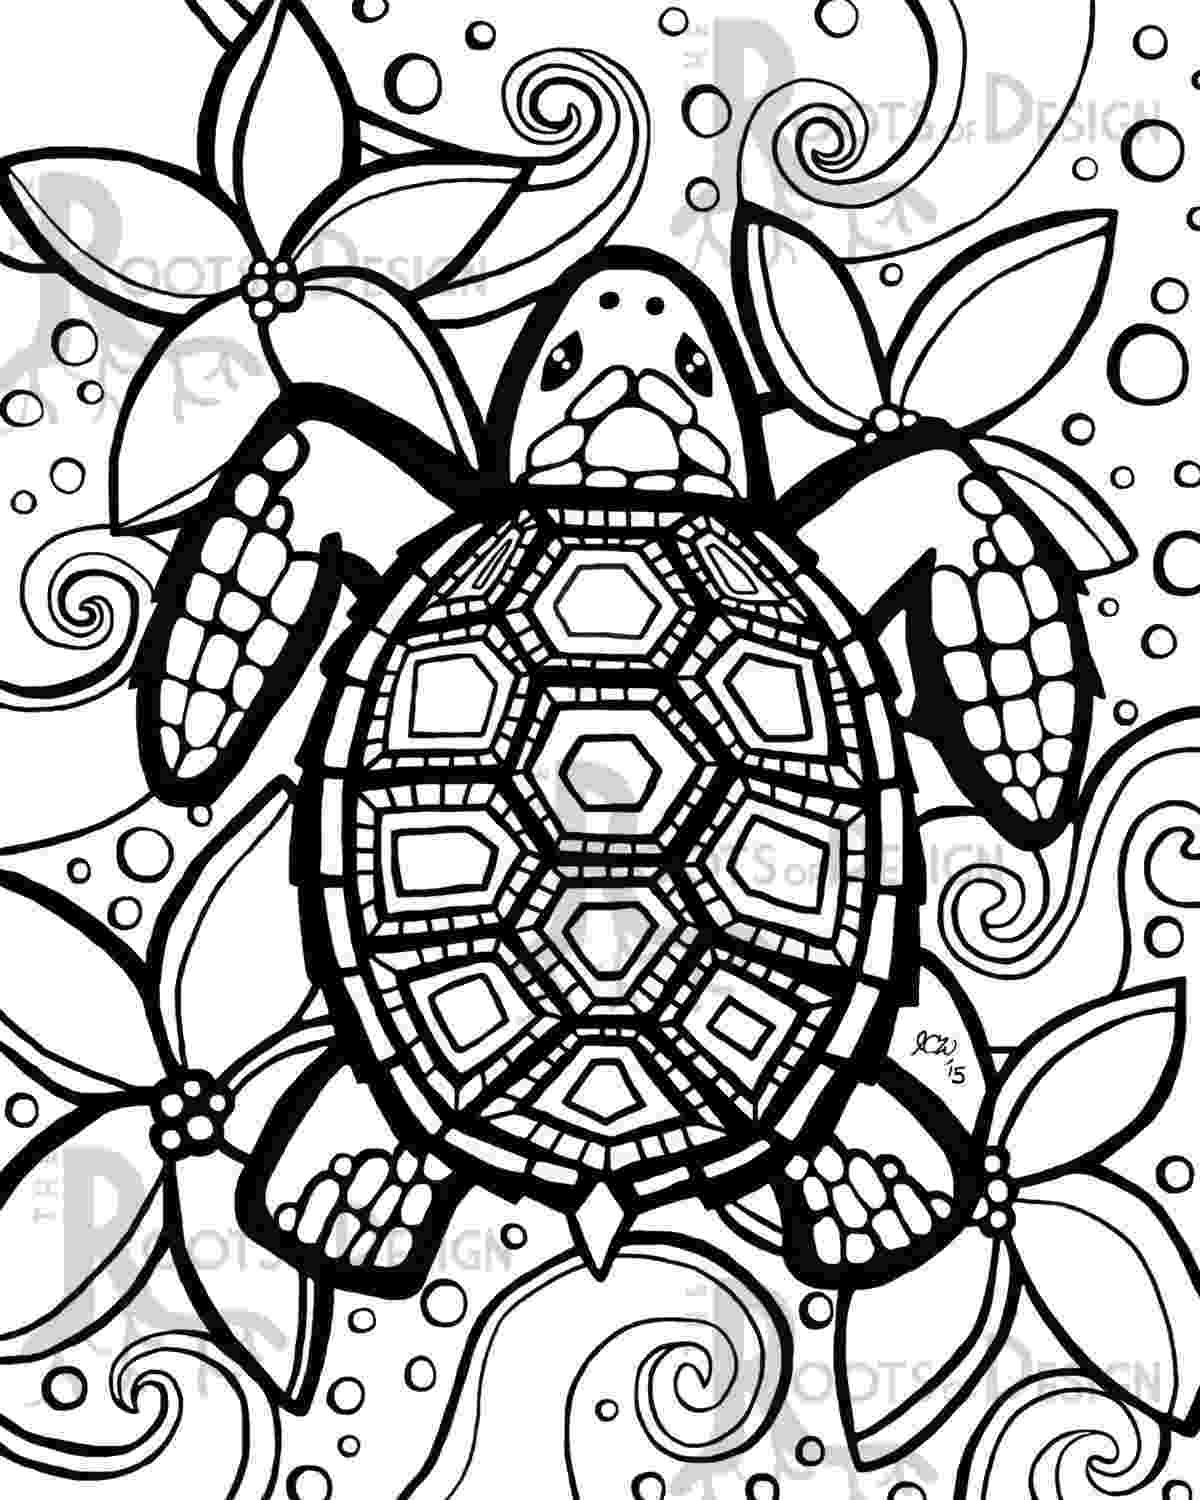 coloring pages of sea turtles free printable sea turtle coloring pages at getdrawings pages turtles sea coloring of